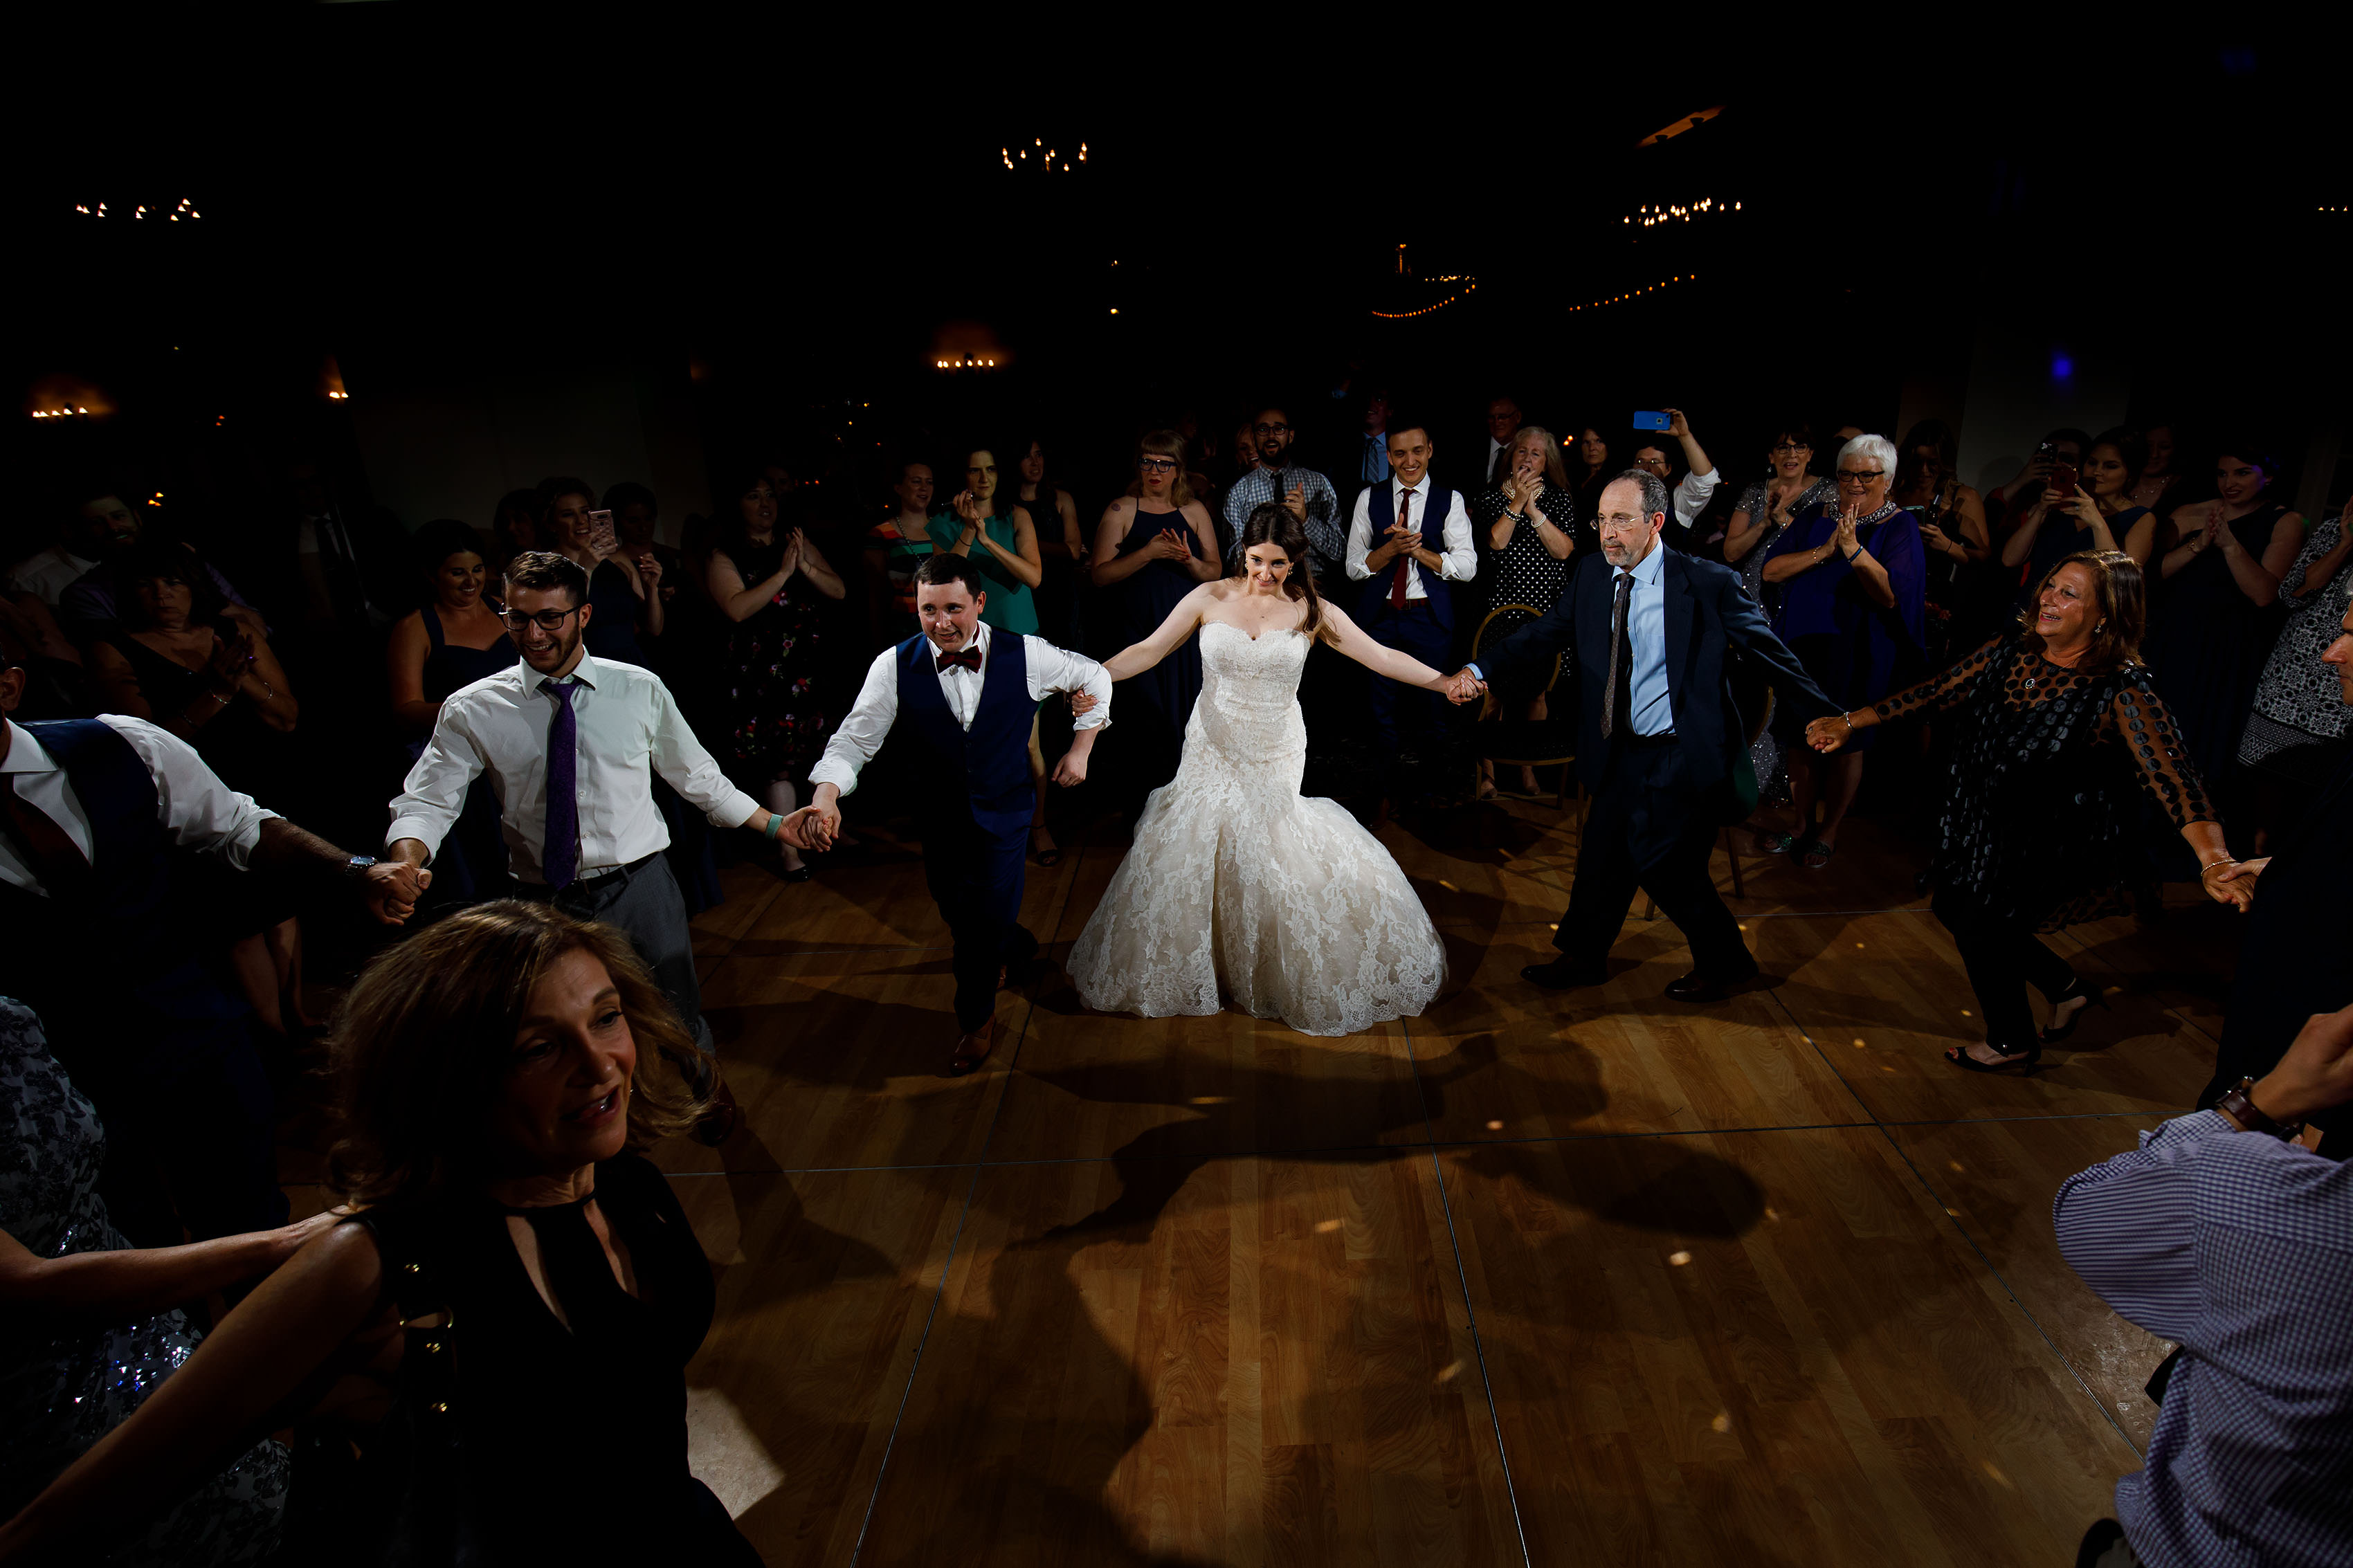 The newlyweds dance with guests at Ravisloe